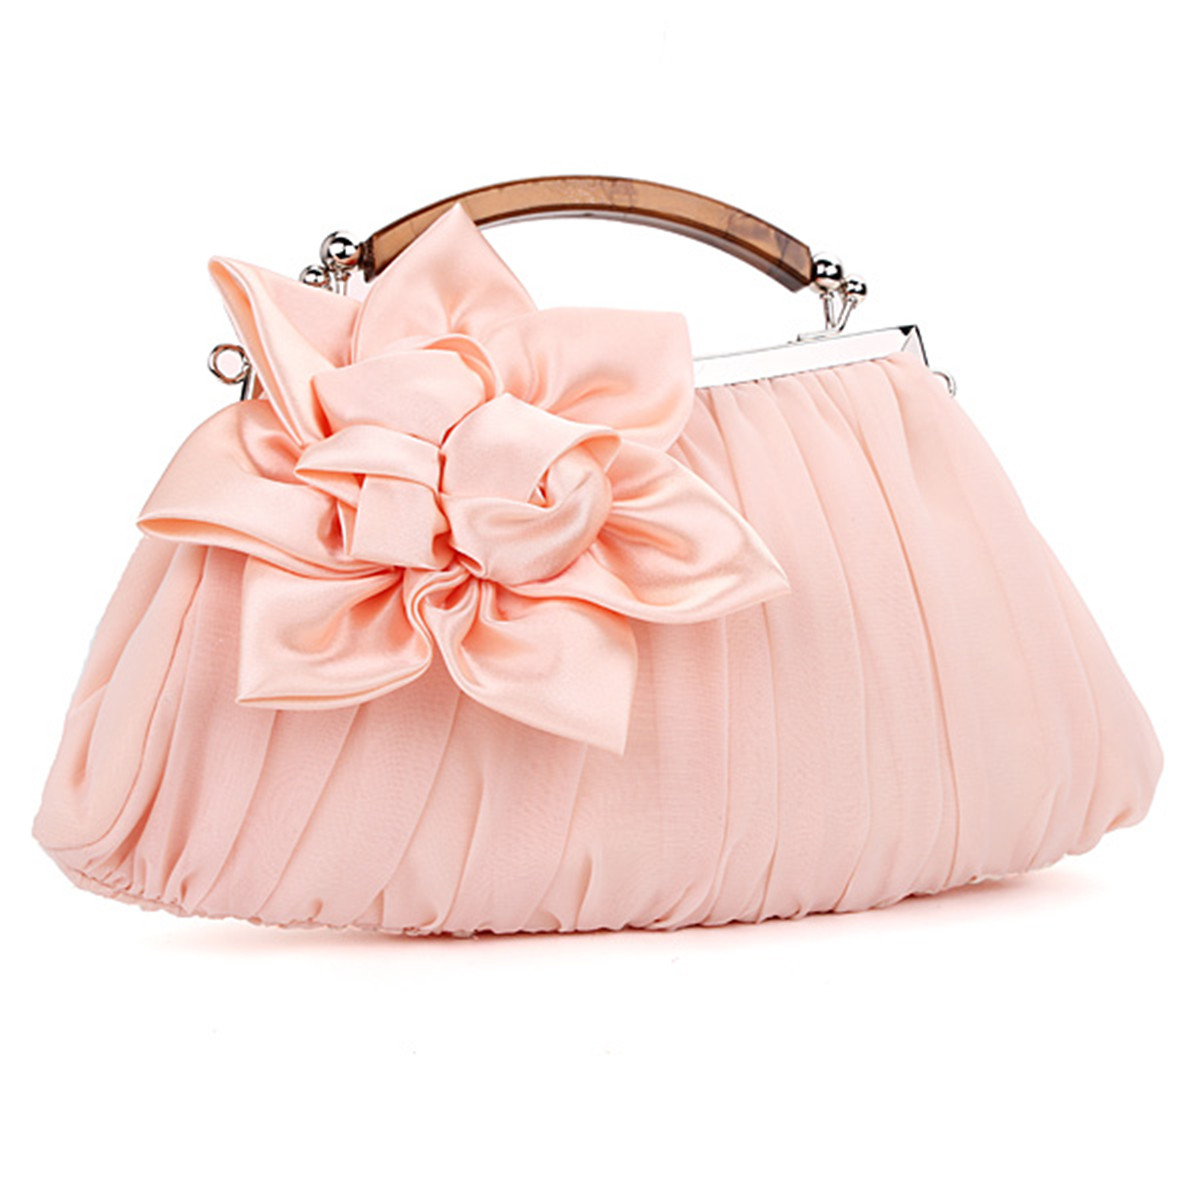 57dfce50c47d Buy Trendy Accessories 2015 Evening Bag Flower Bride Bags Purse Full Dress  Party Handbag Wedding Clutch Women Party Purse Lady Gift in Cheap Price on  ...